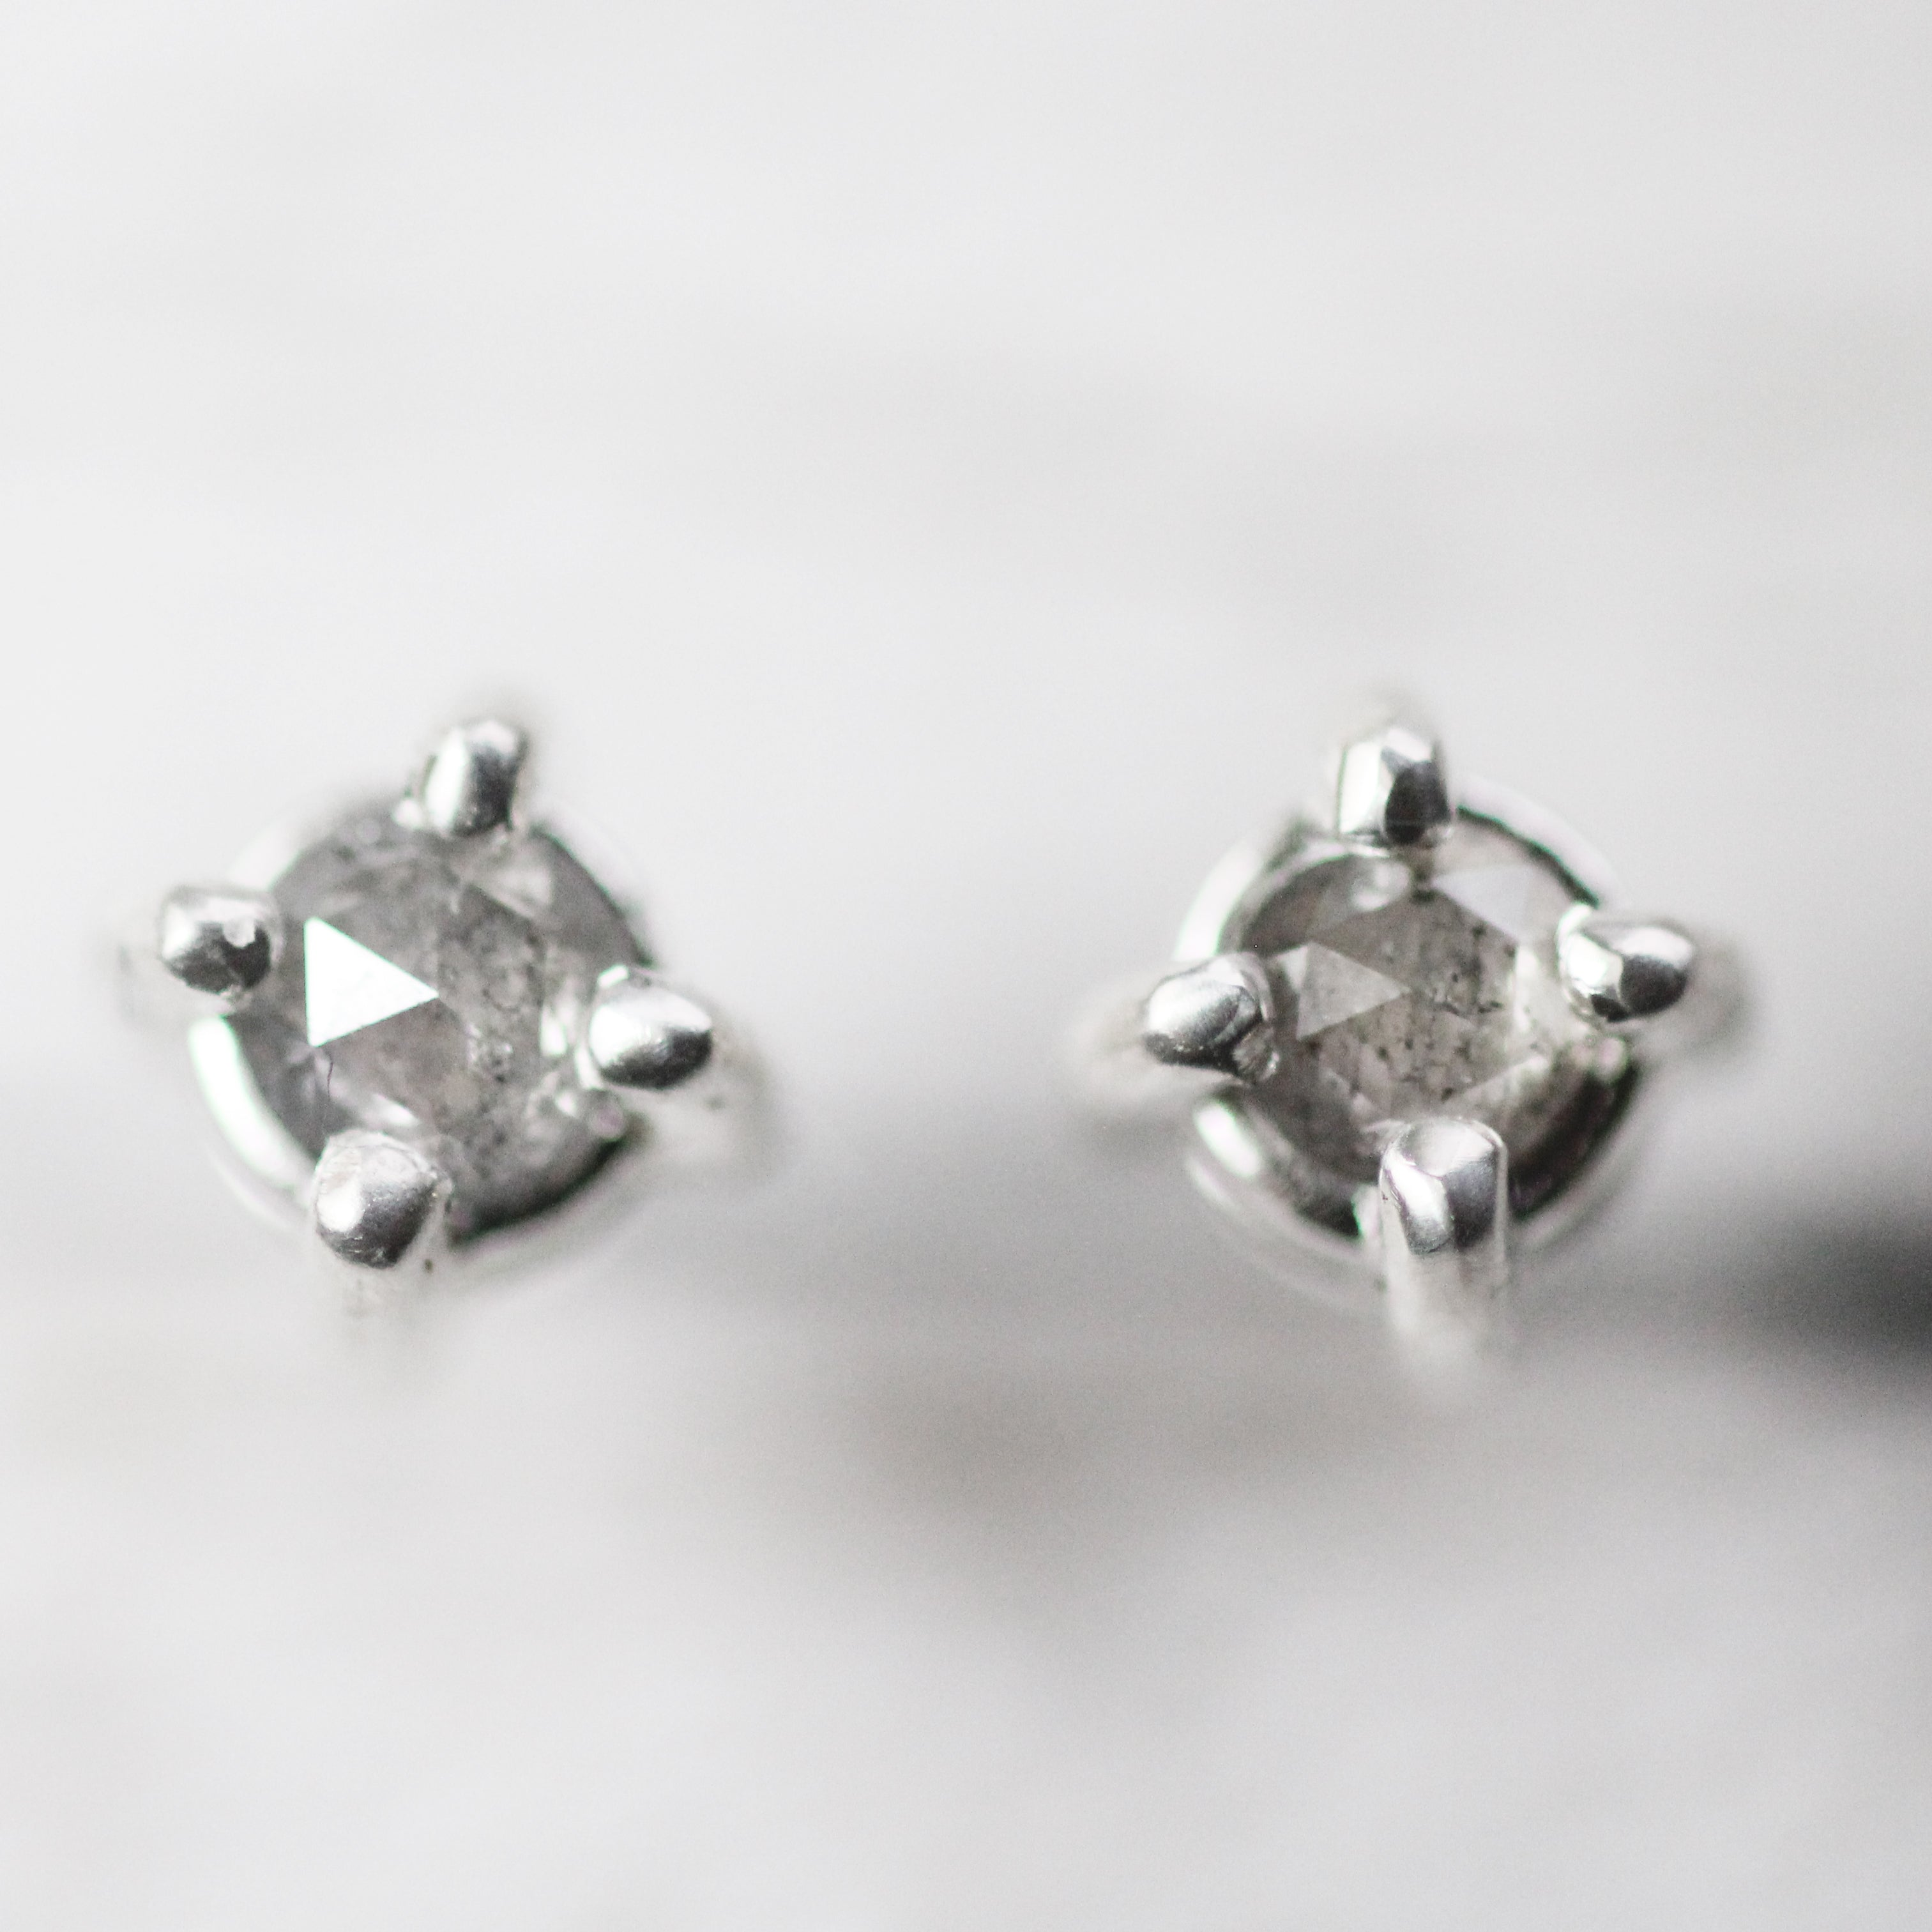 14k Gold Gray Diamond Earring Studs - Rose Cut Celestial - Ready to ship fast